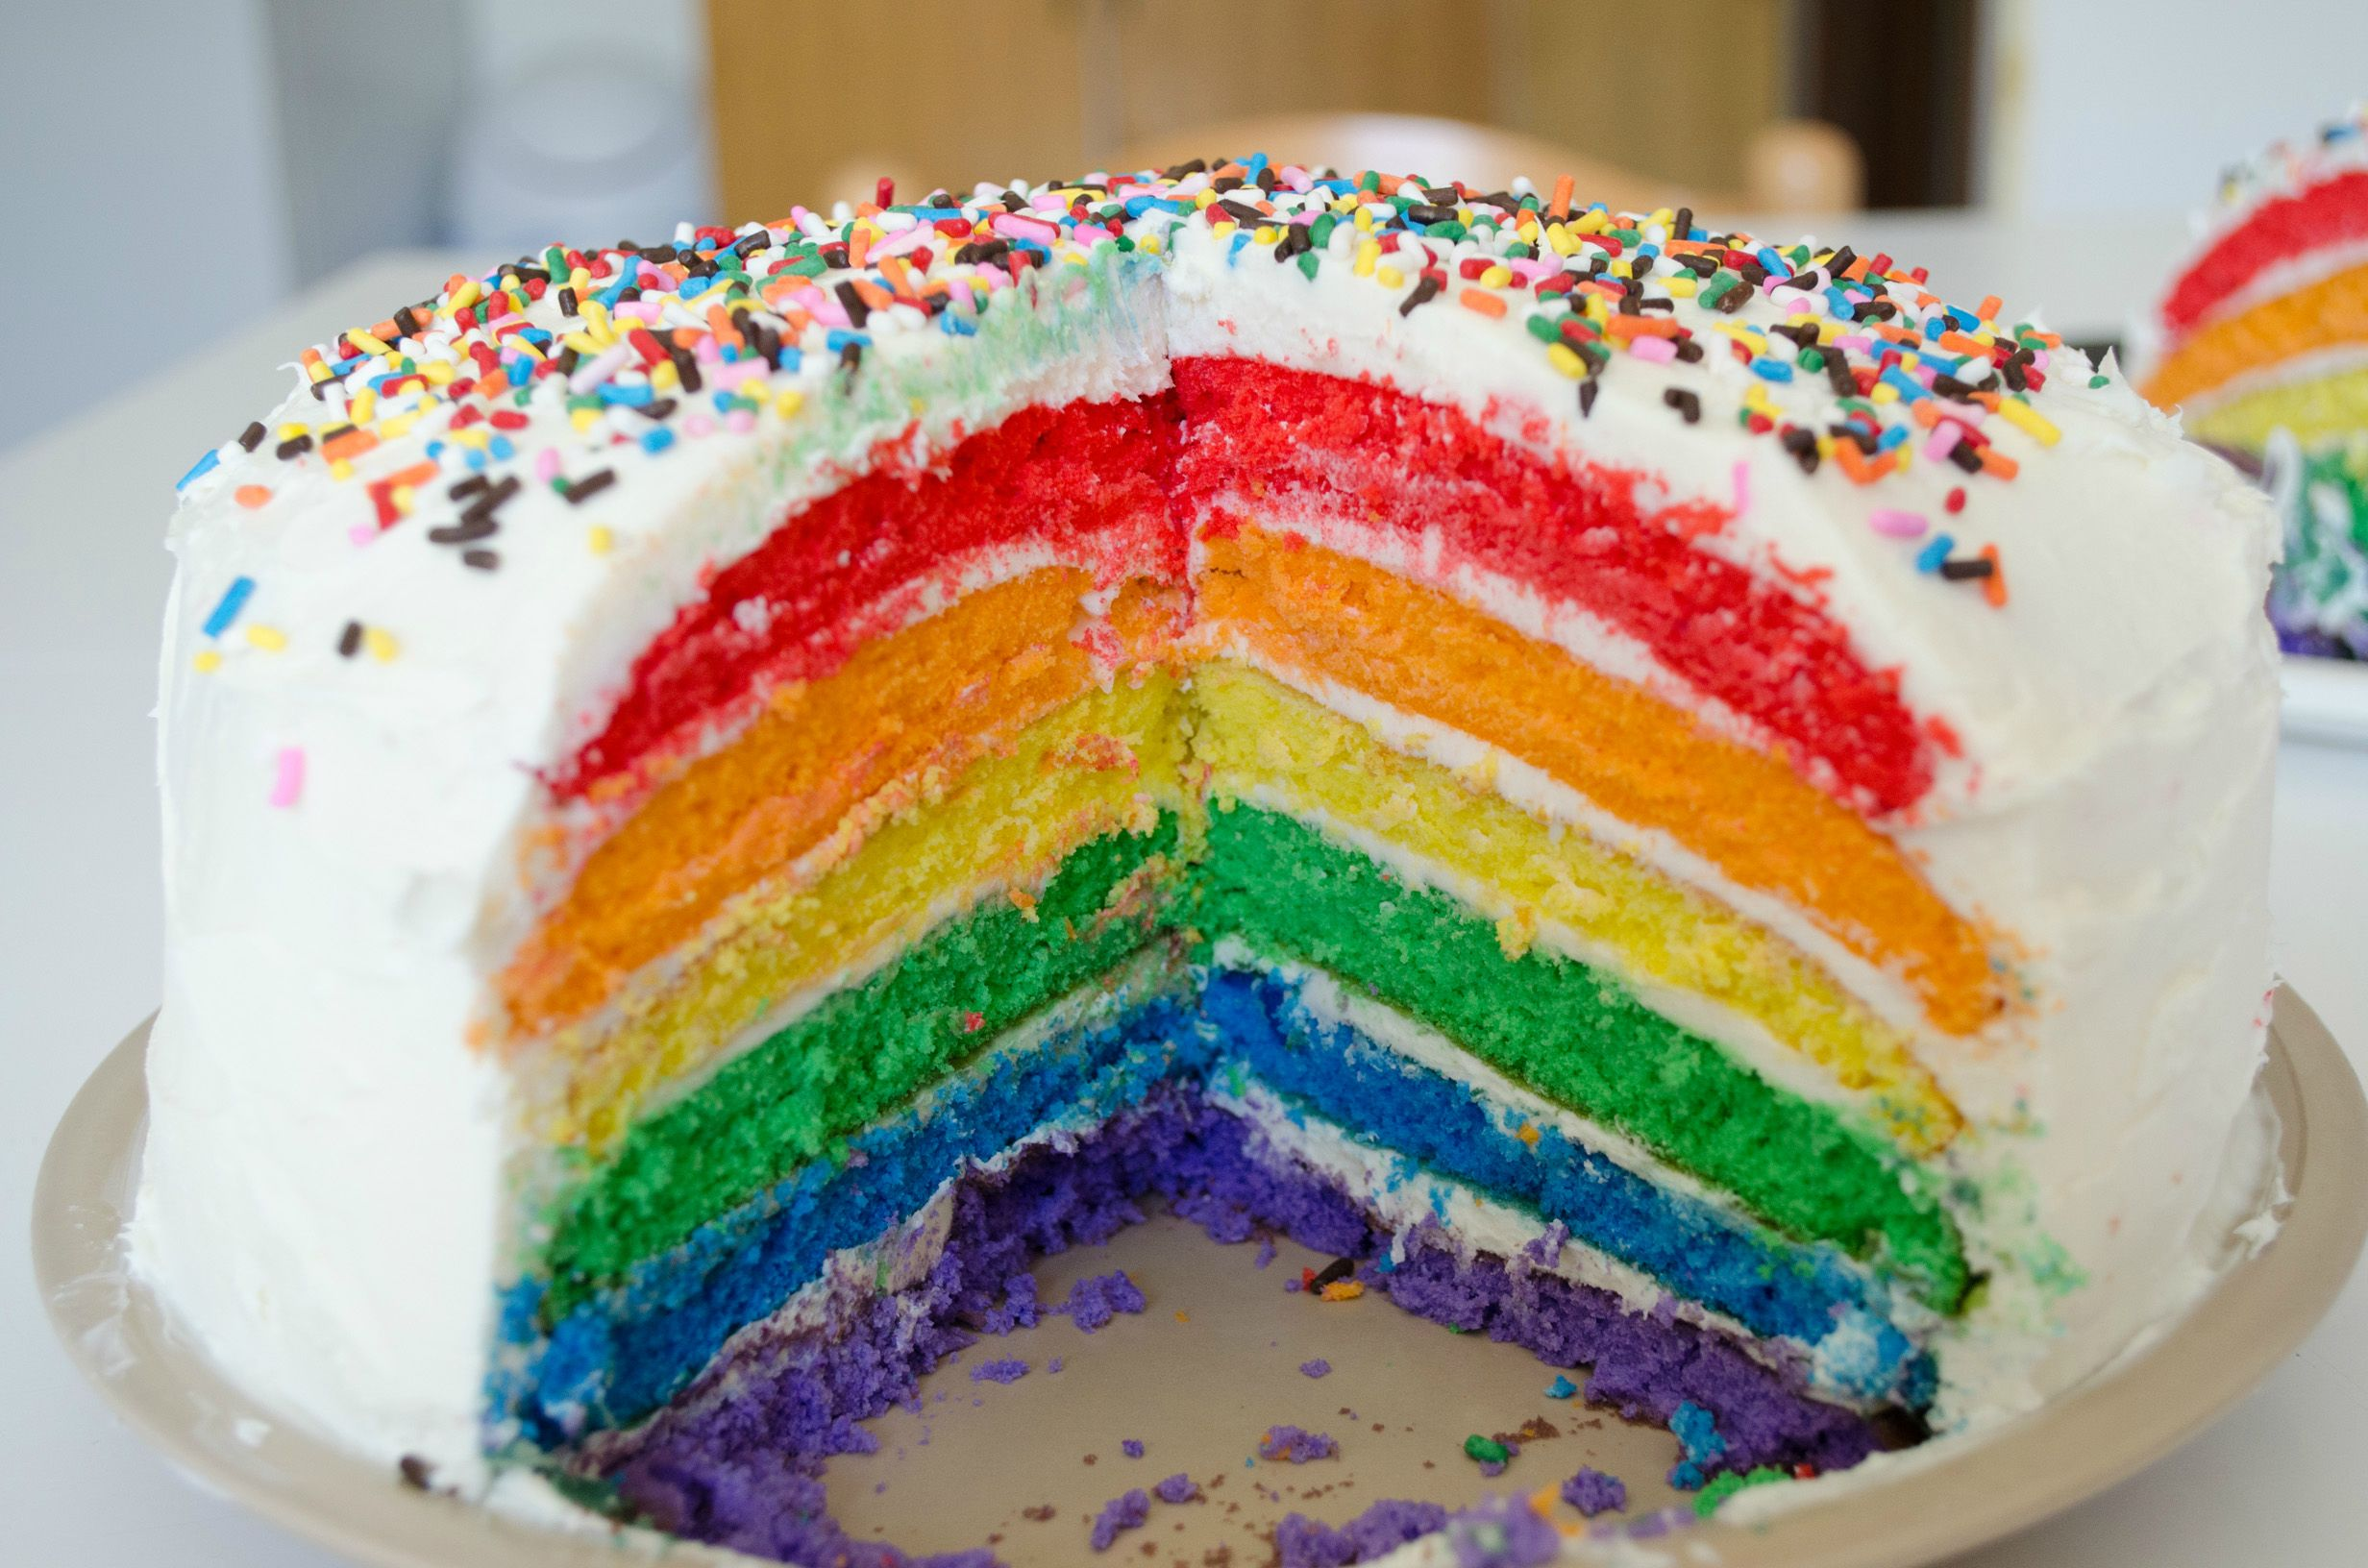 Cake Images With S : Rainbow Cakes ? - Cakes Photo (35204518) - Fanpop